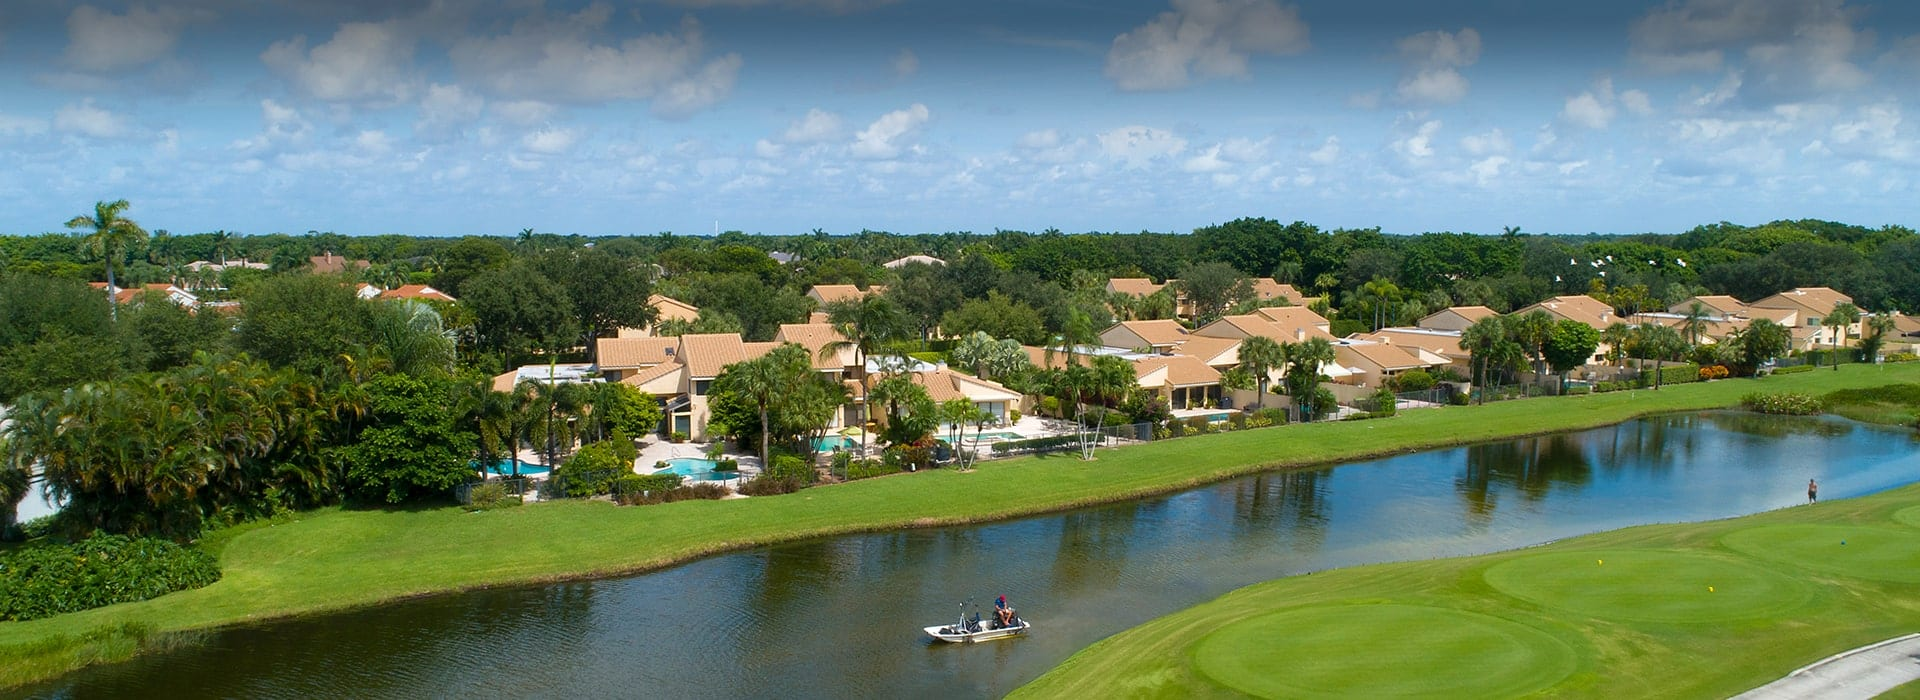 Fairway Oaks attached villas at Boca West with views of the lake and golf course